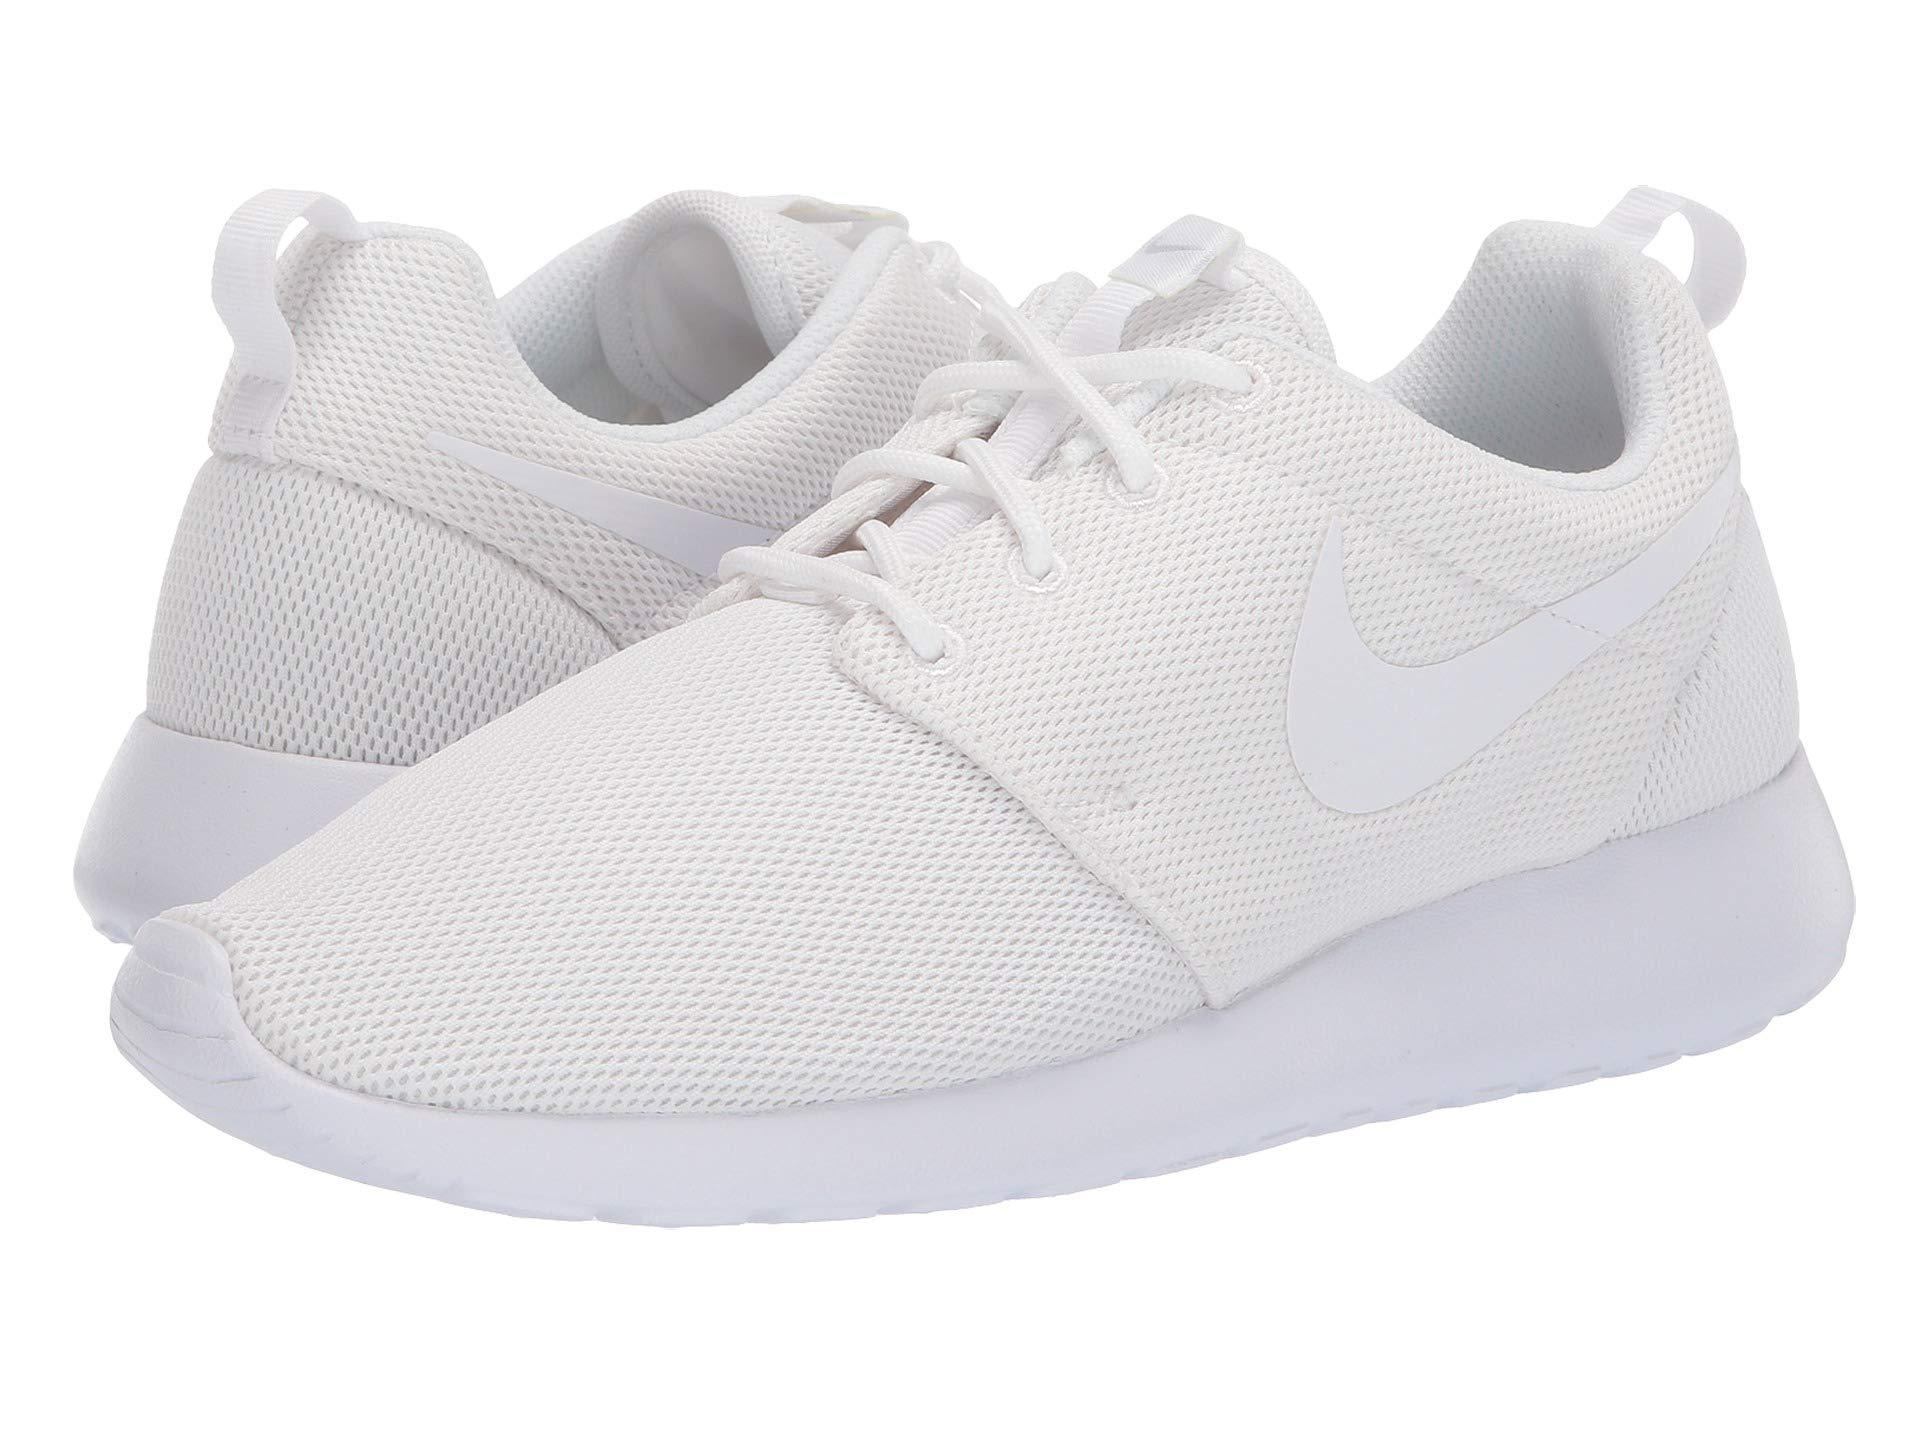 Lyst - Nike Roshe One (cool Grey pure Platinum summit White) Women s ... c44b91b7aac3